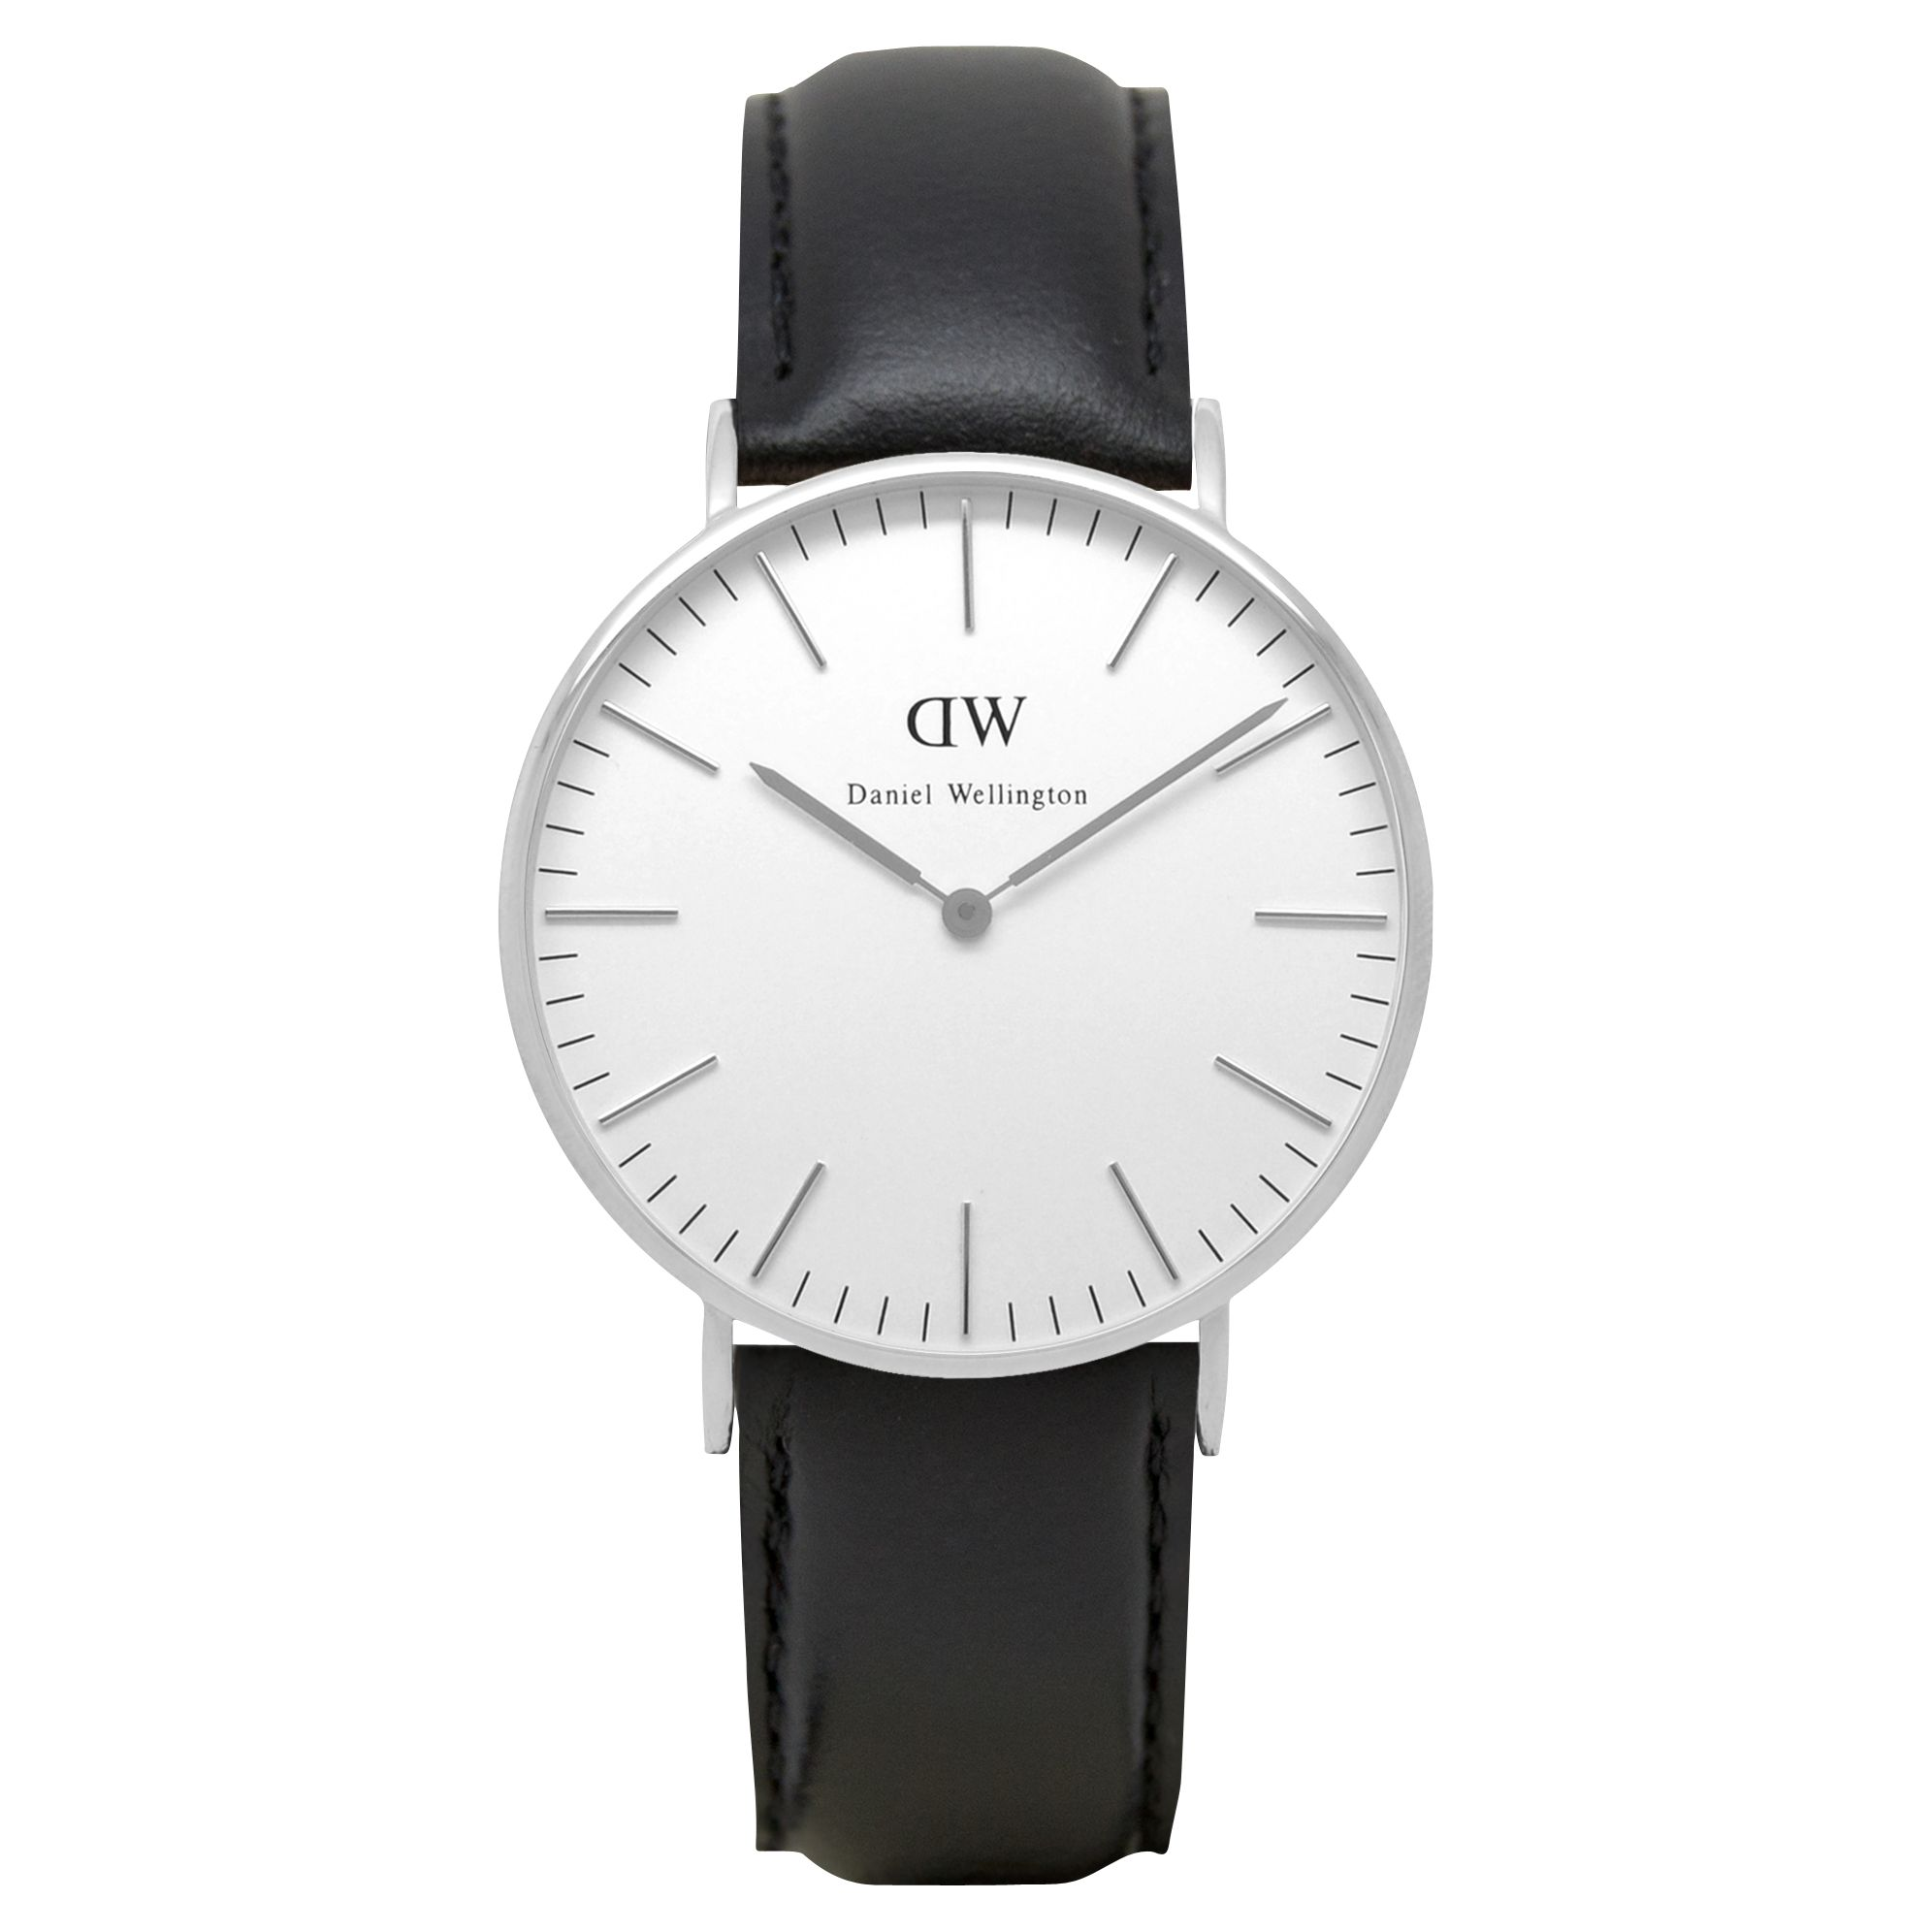 Daniel Wellington Daniel Wellington DW00100053 Women's 36mm Vintage Leather Strap Watch, Black/White